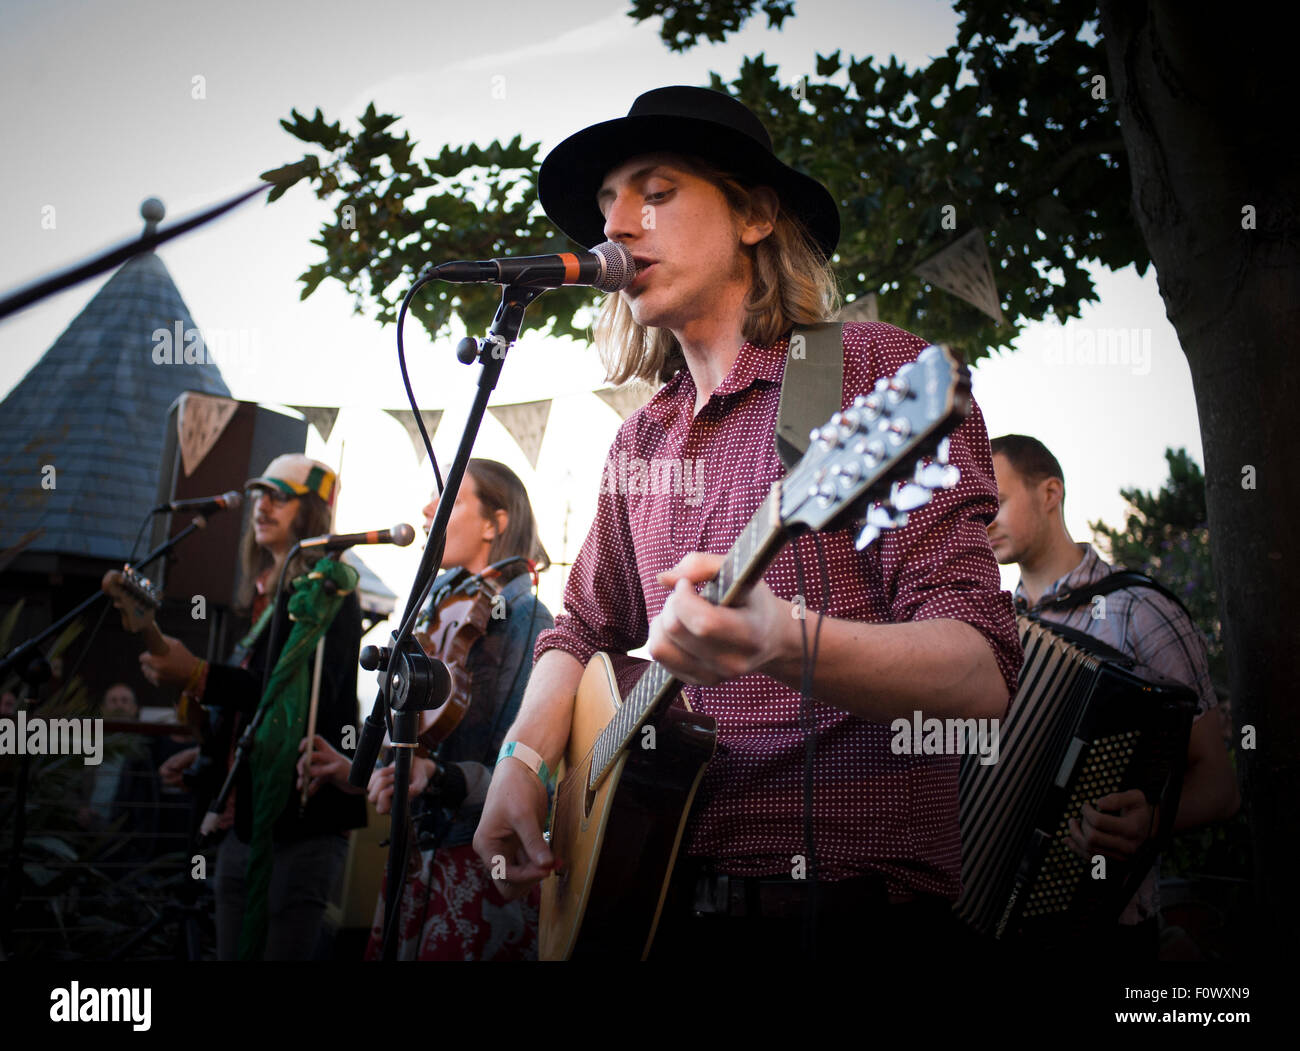 Broadstairs Folk Festival, 8th August 2015. - Stock Image